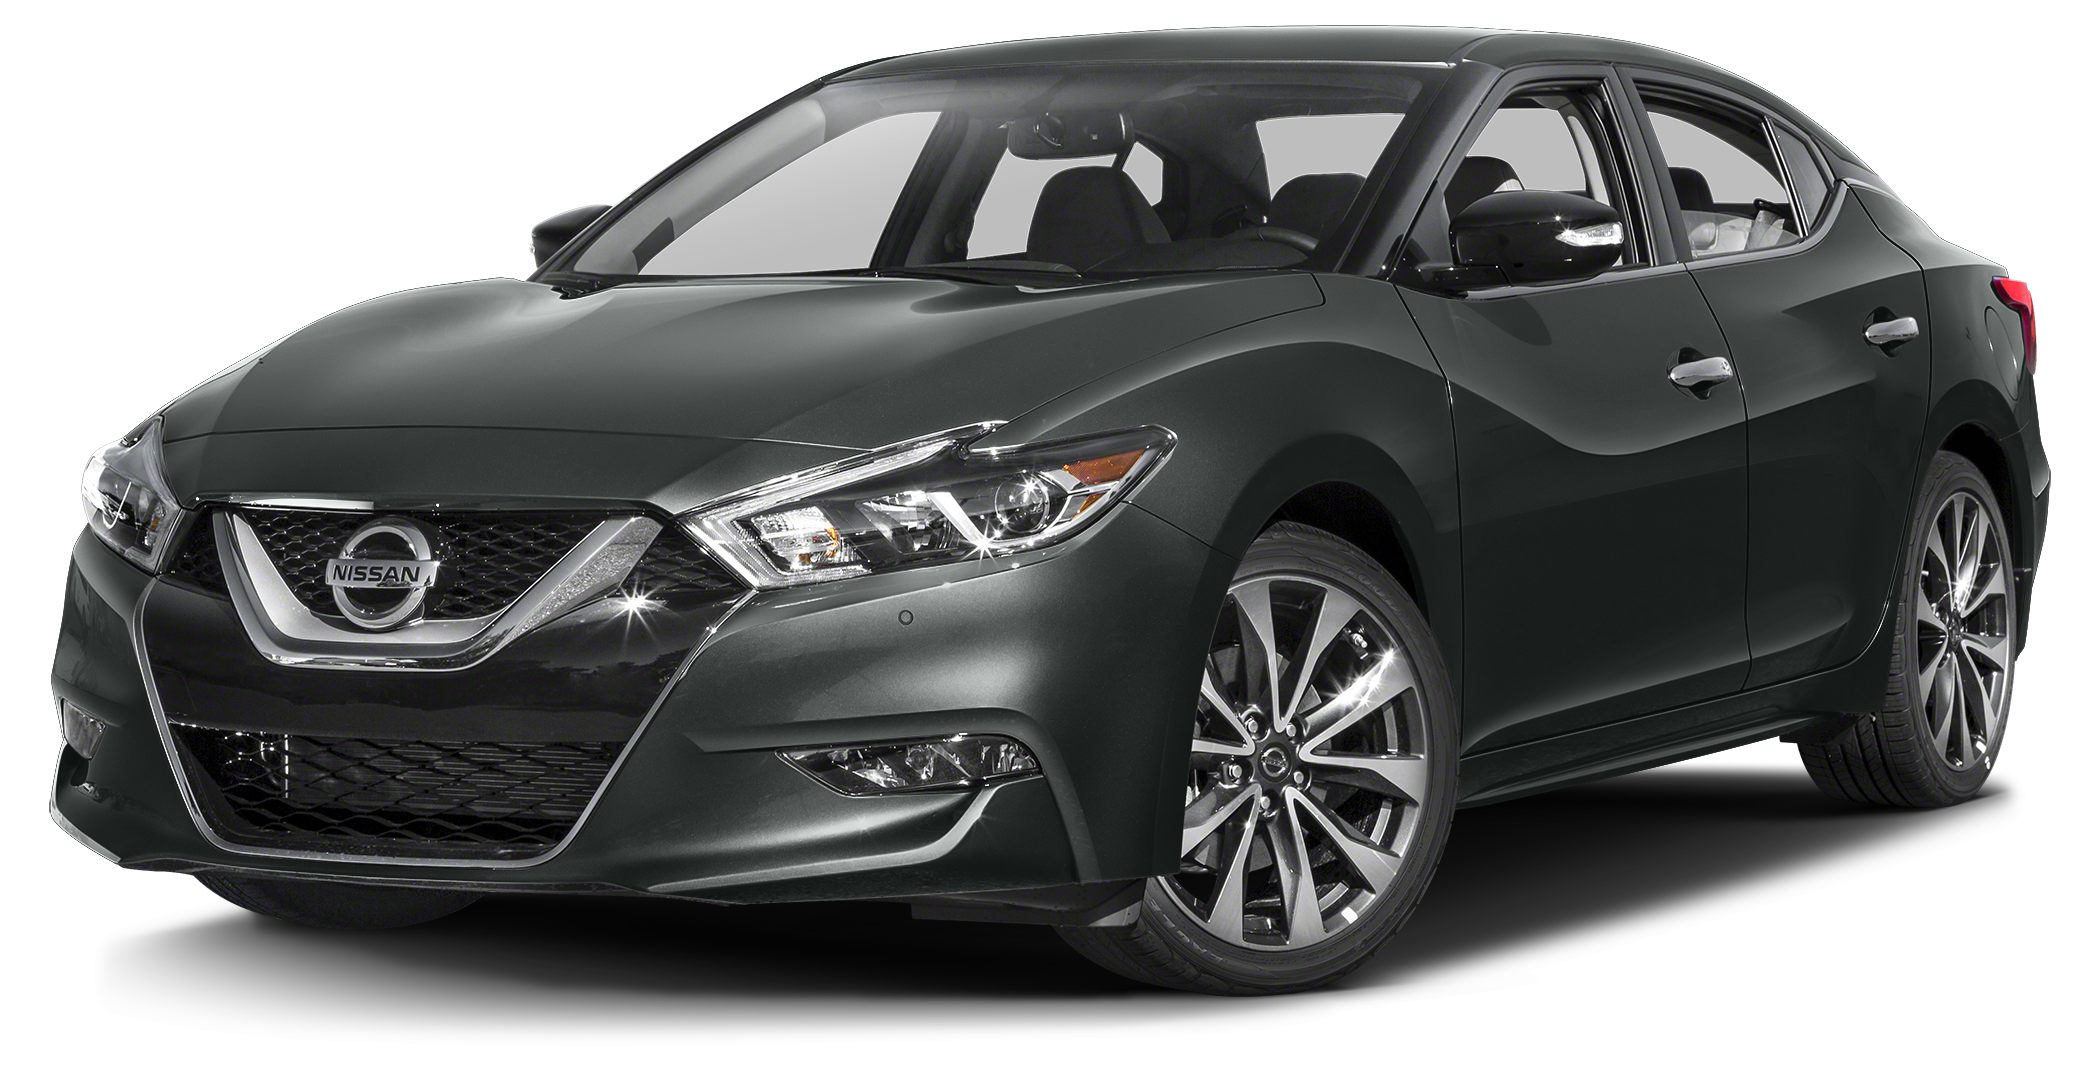 2016 Nissan Maxima 35 SR Priced to sell 6929 below MSRP -Great Gas Mileage- Navigation Blu